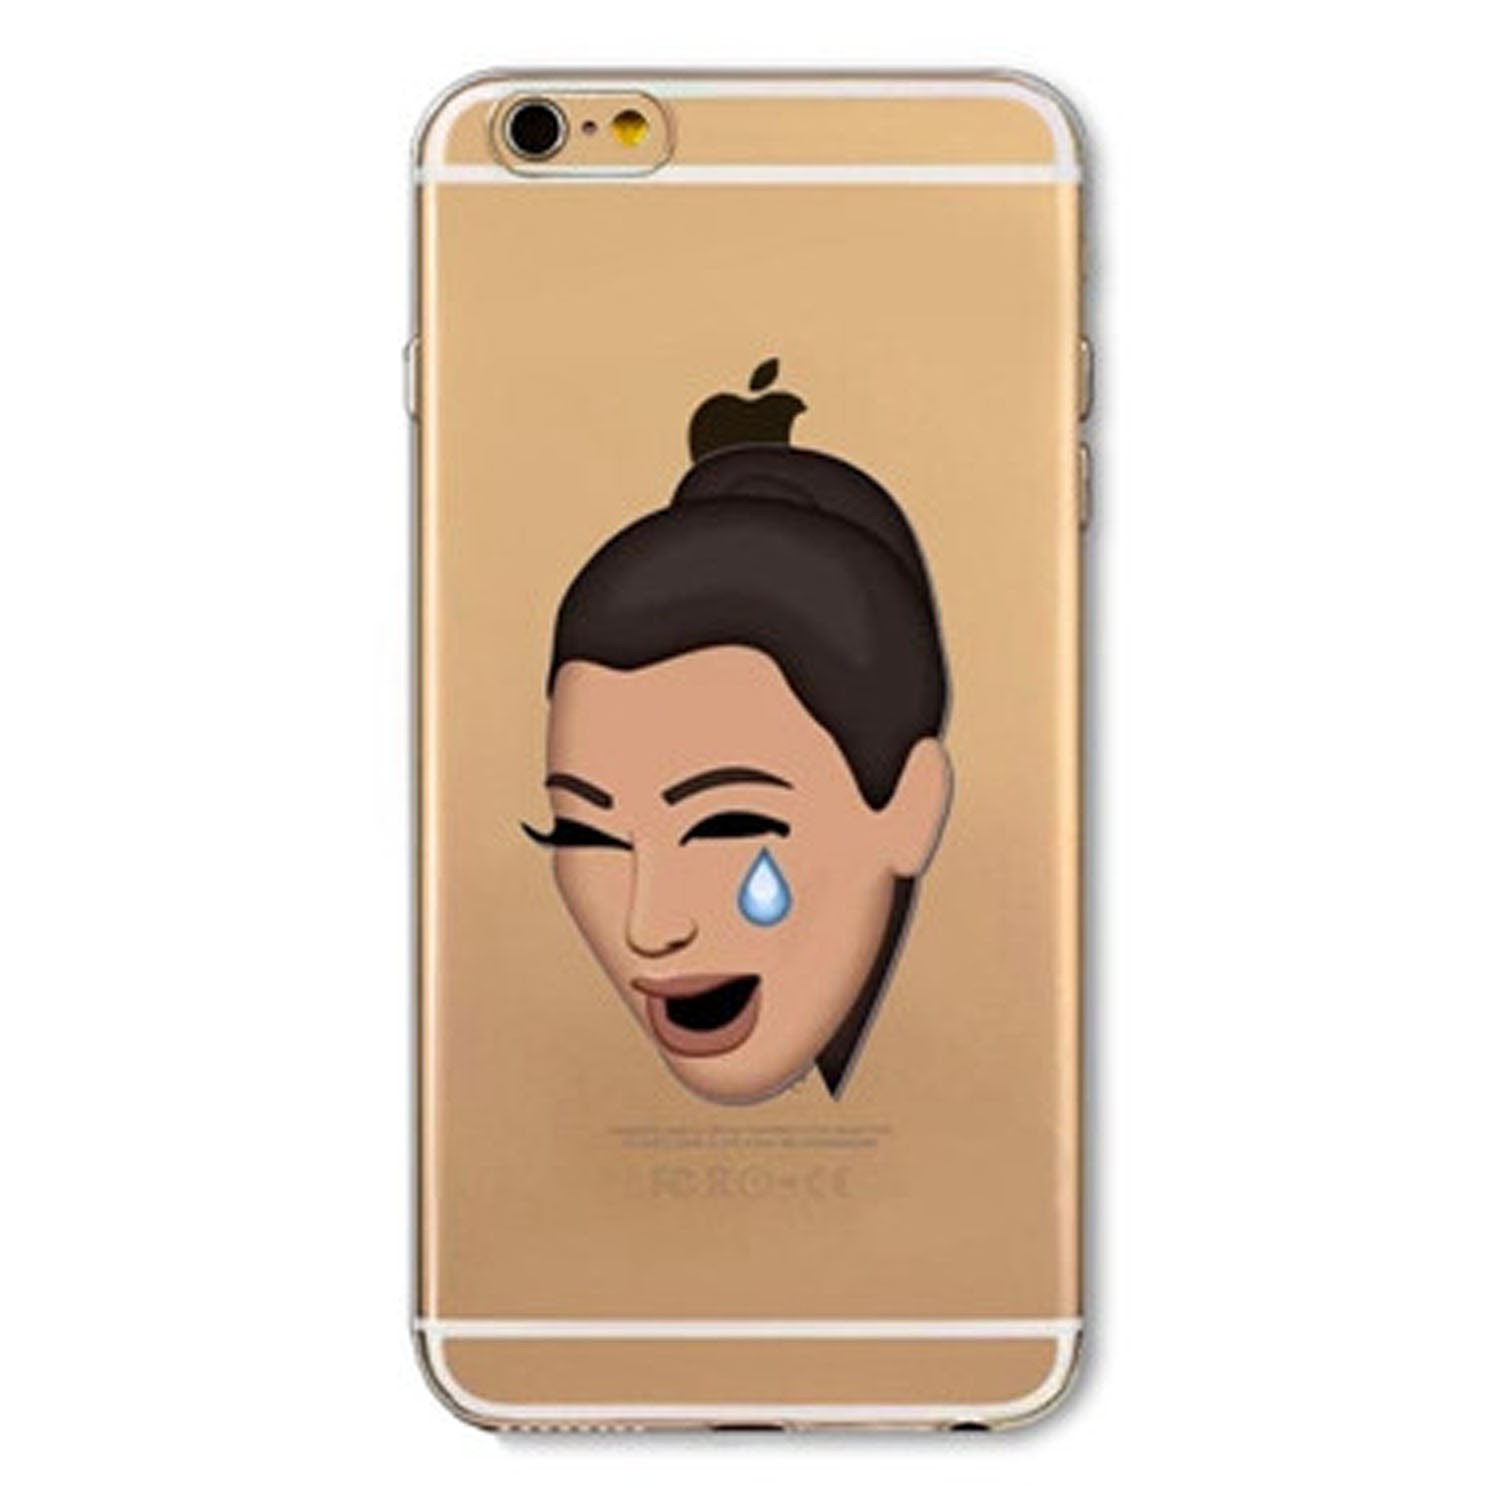 Kritzel Case Emoji Collection iPhone 6 / 6s - Kimoji 2